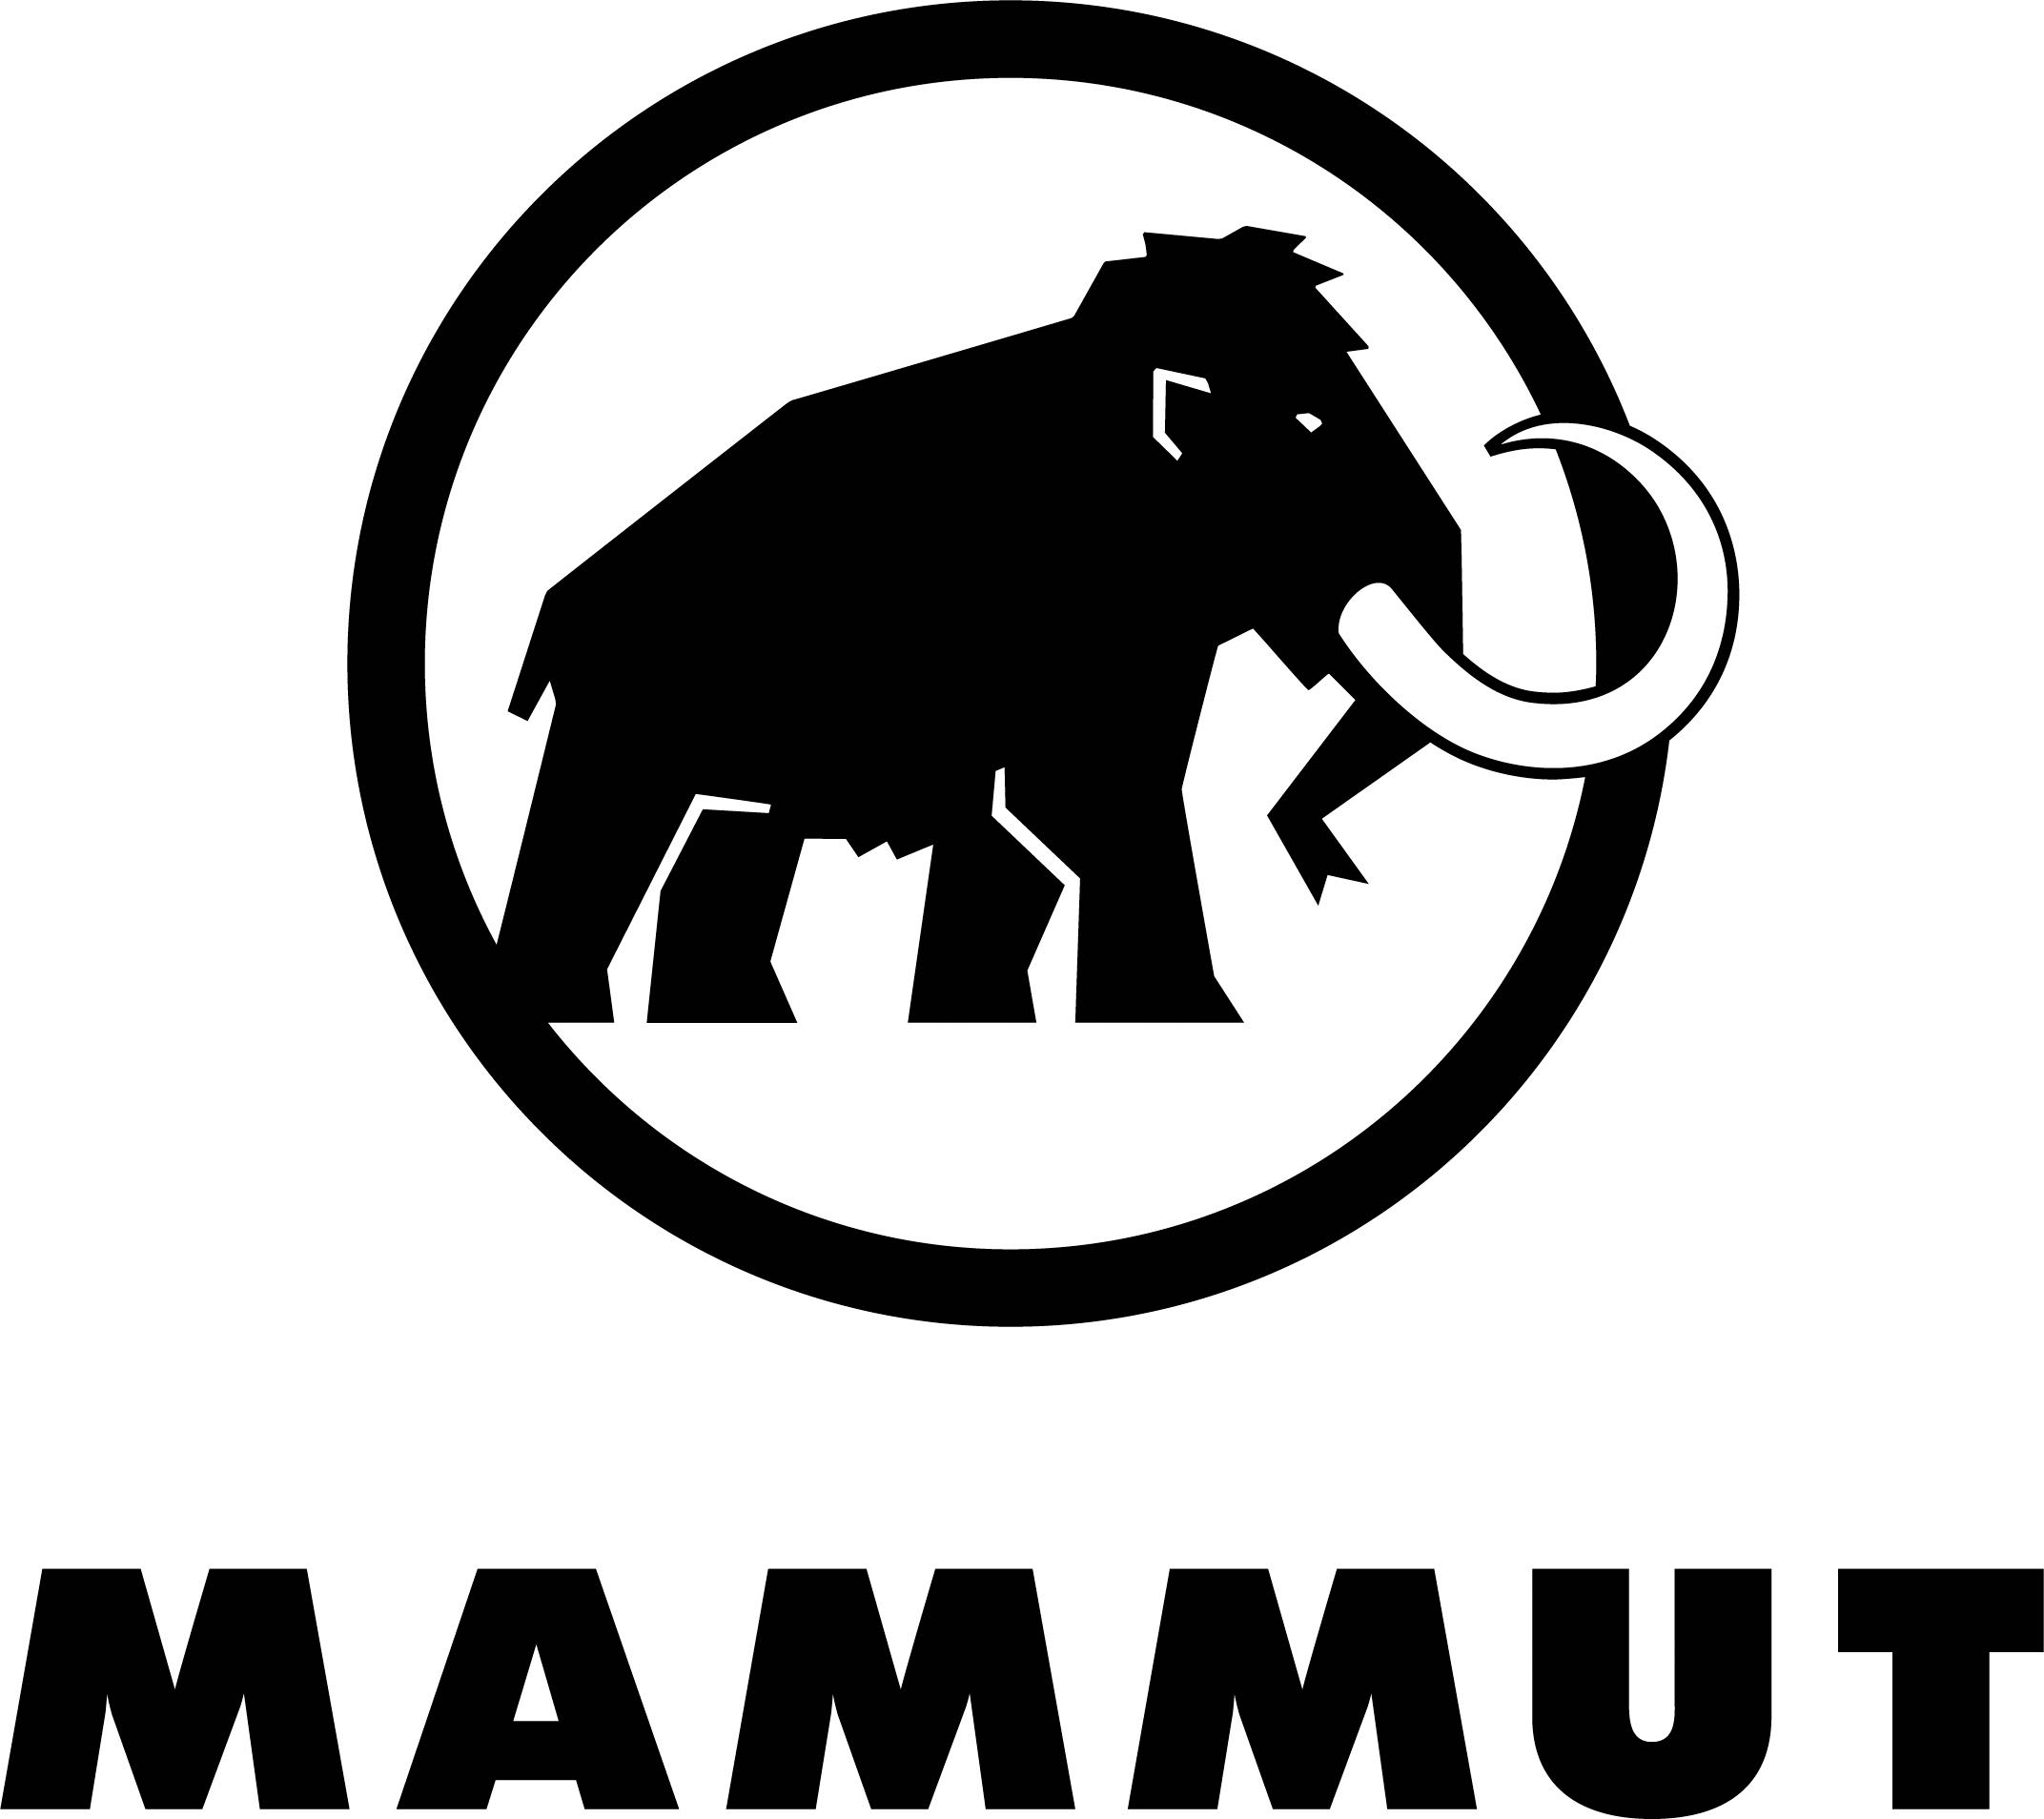 01_mammut_black_centered.jpg